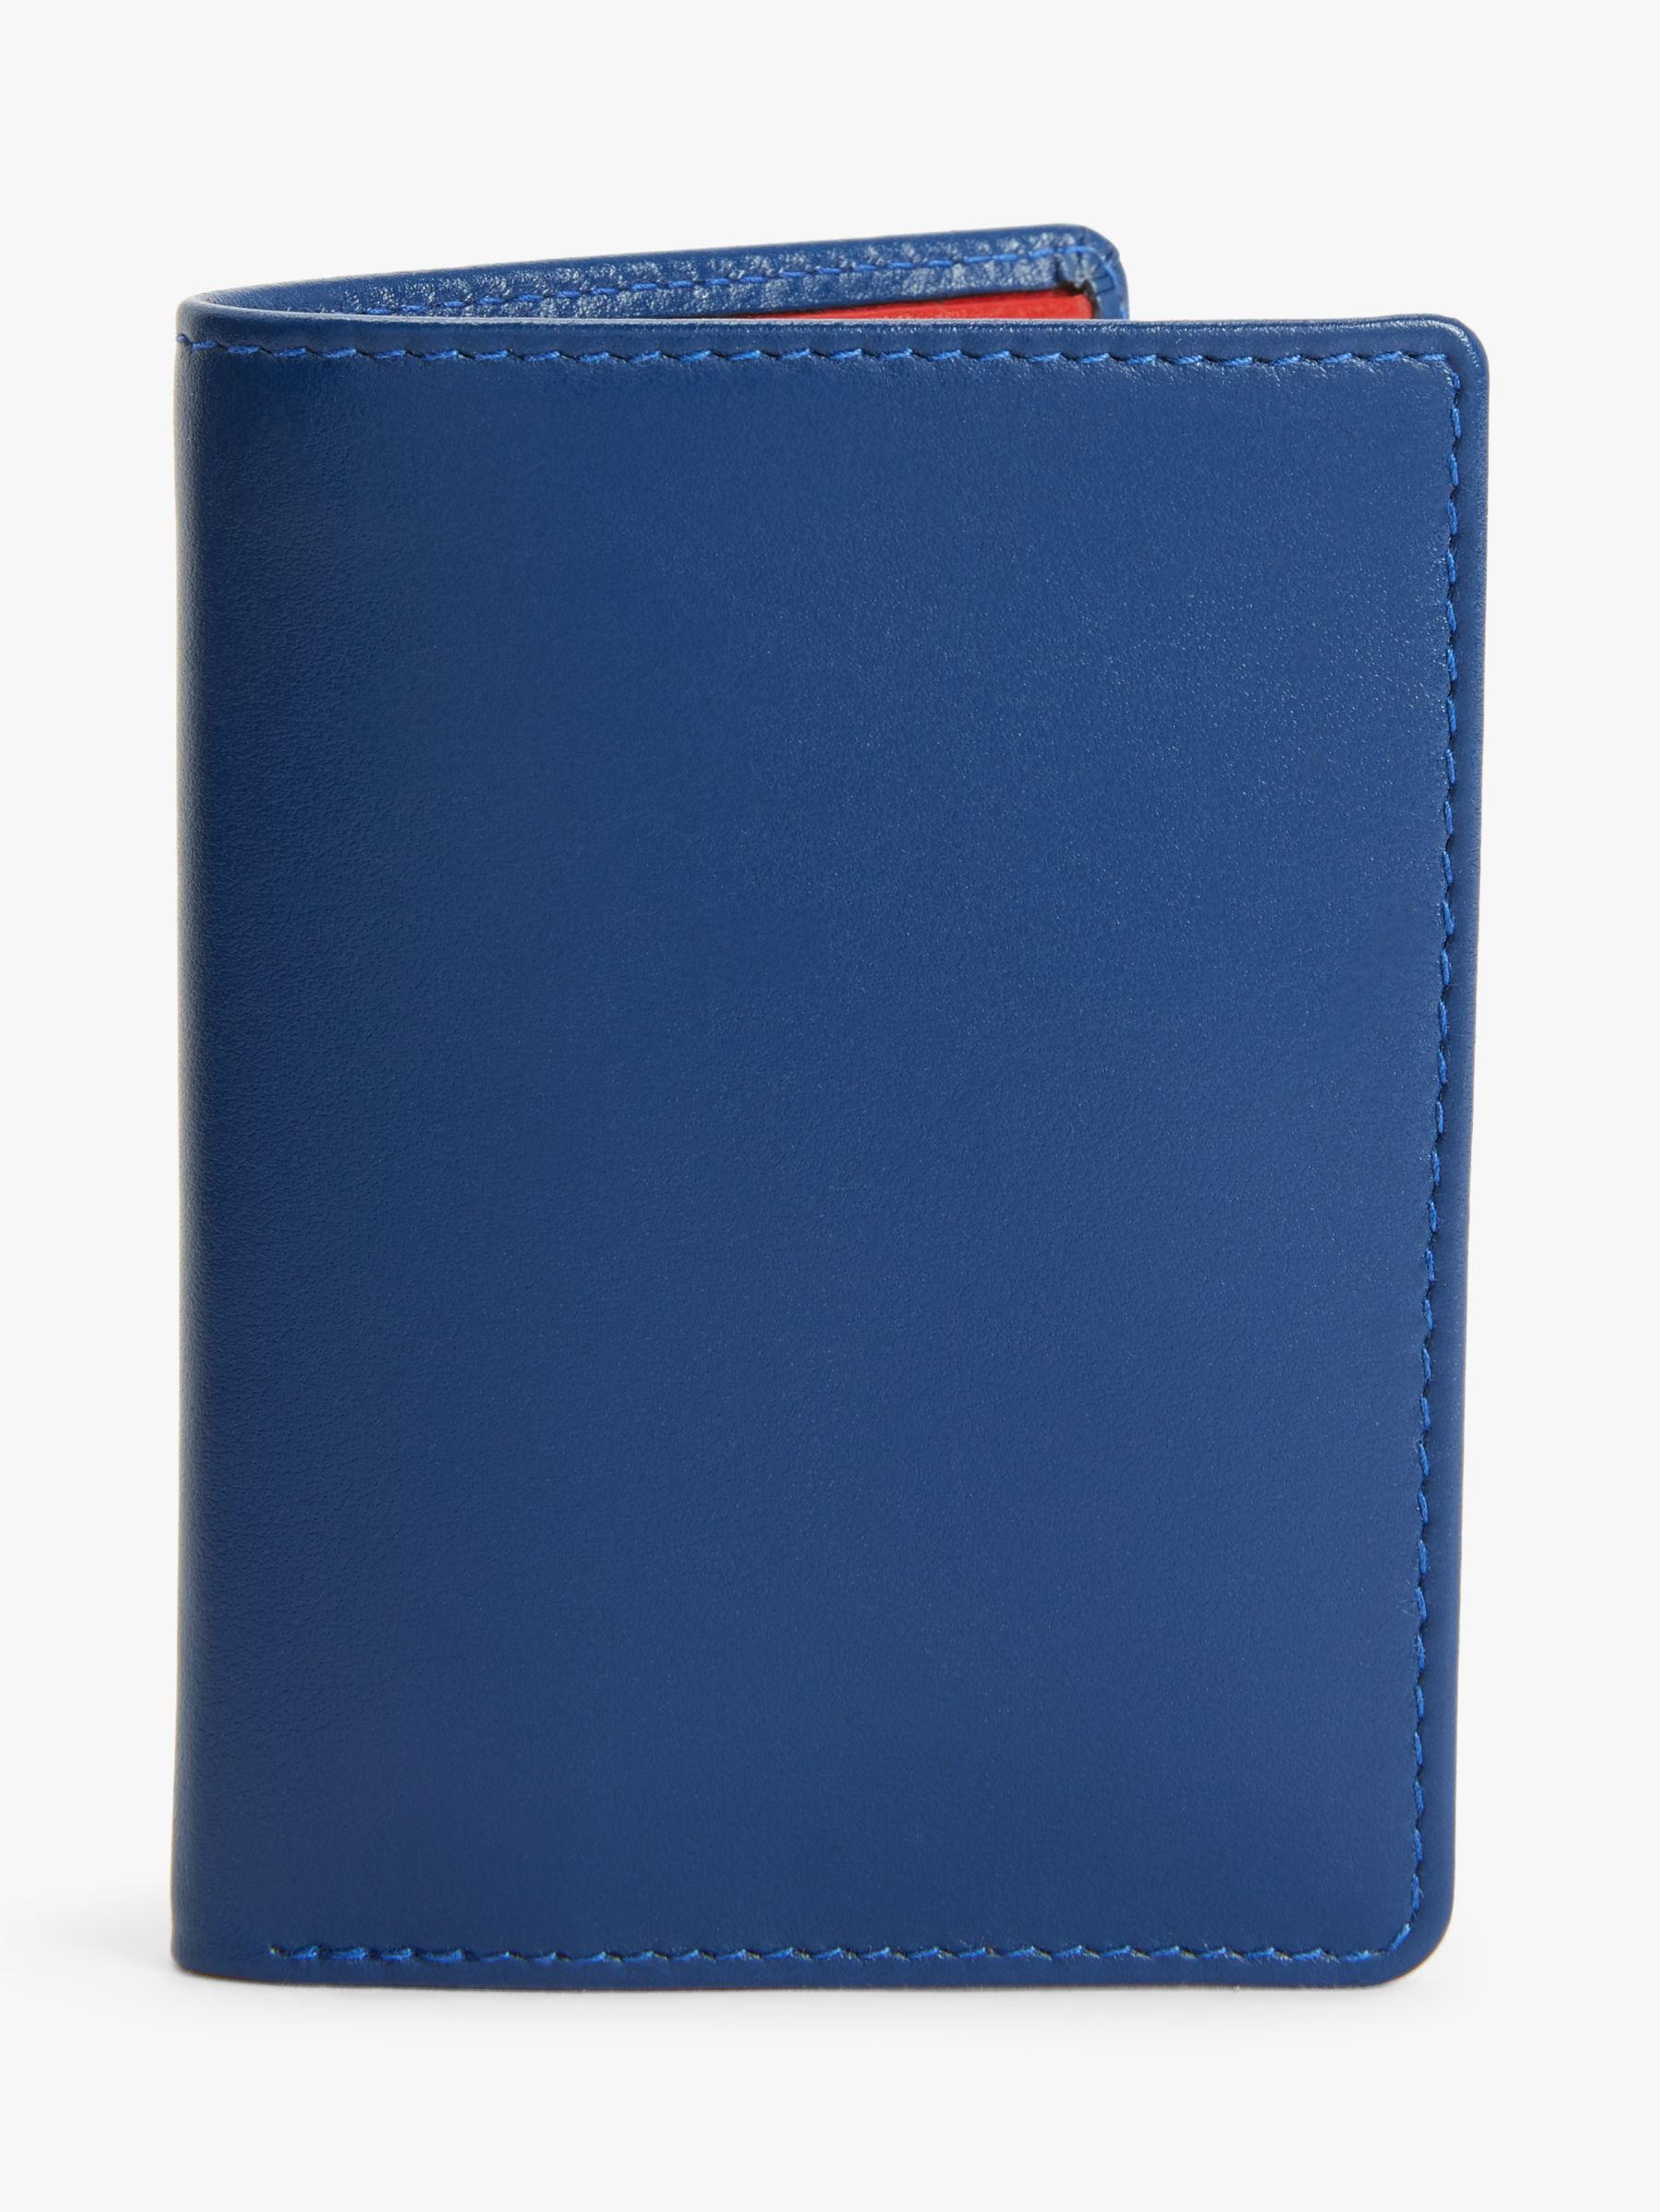 Launer Launer Leather Four Credit Card Coin Wallet, Blue/Red